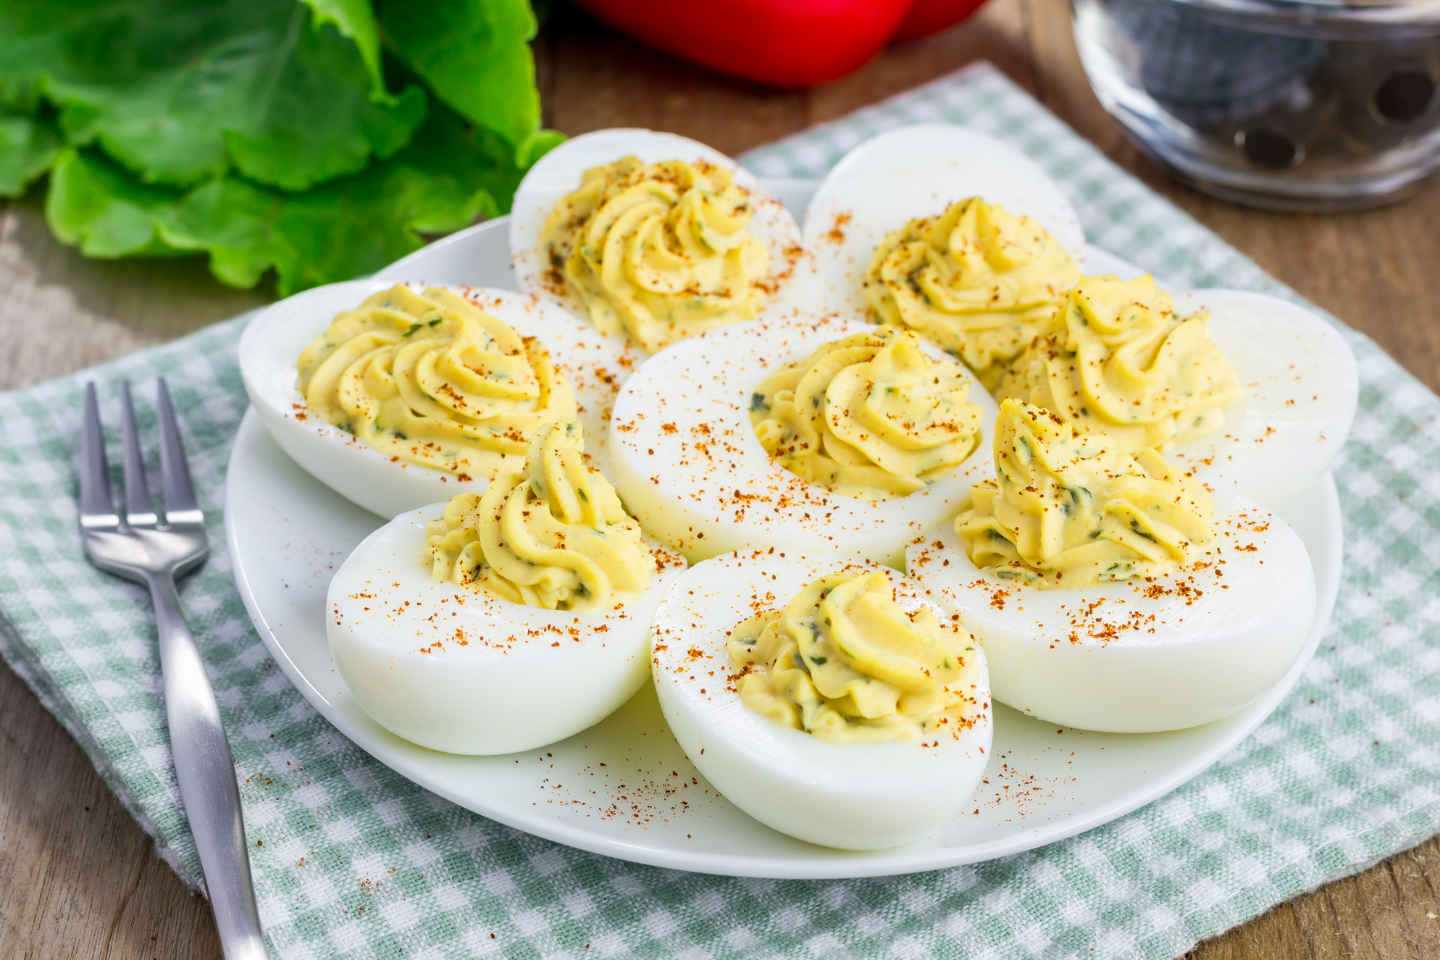 Deviled eggs on plate with blue and white checkered placemat